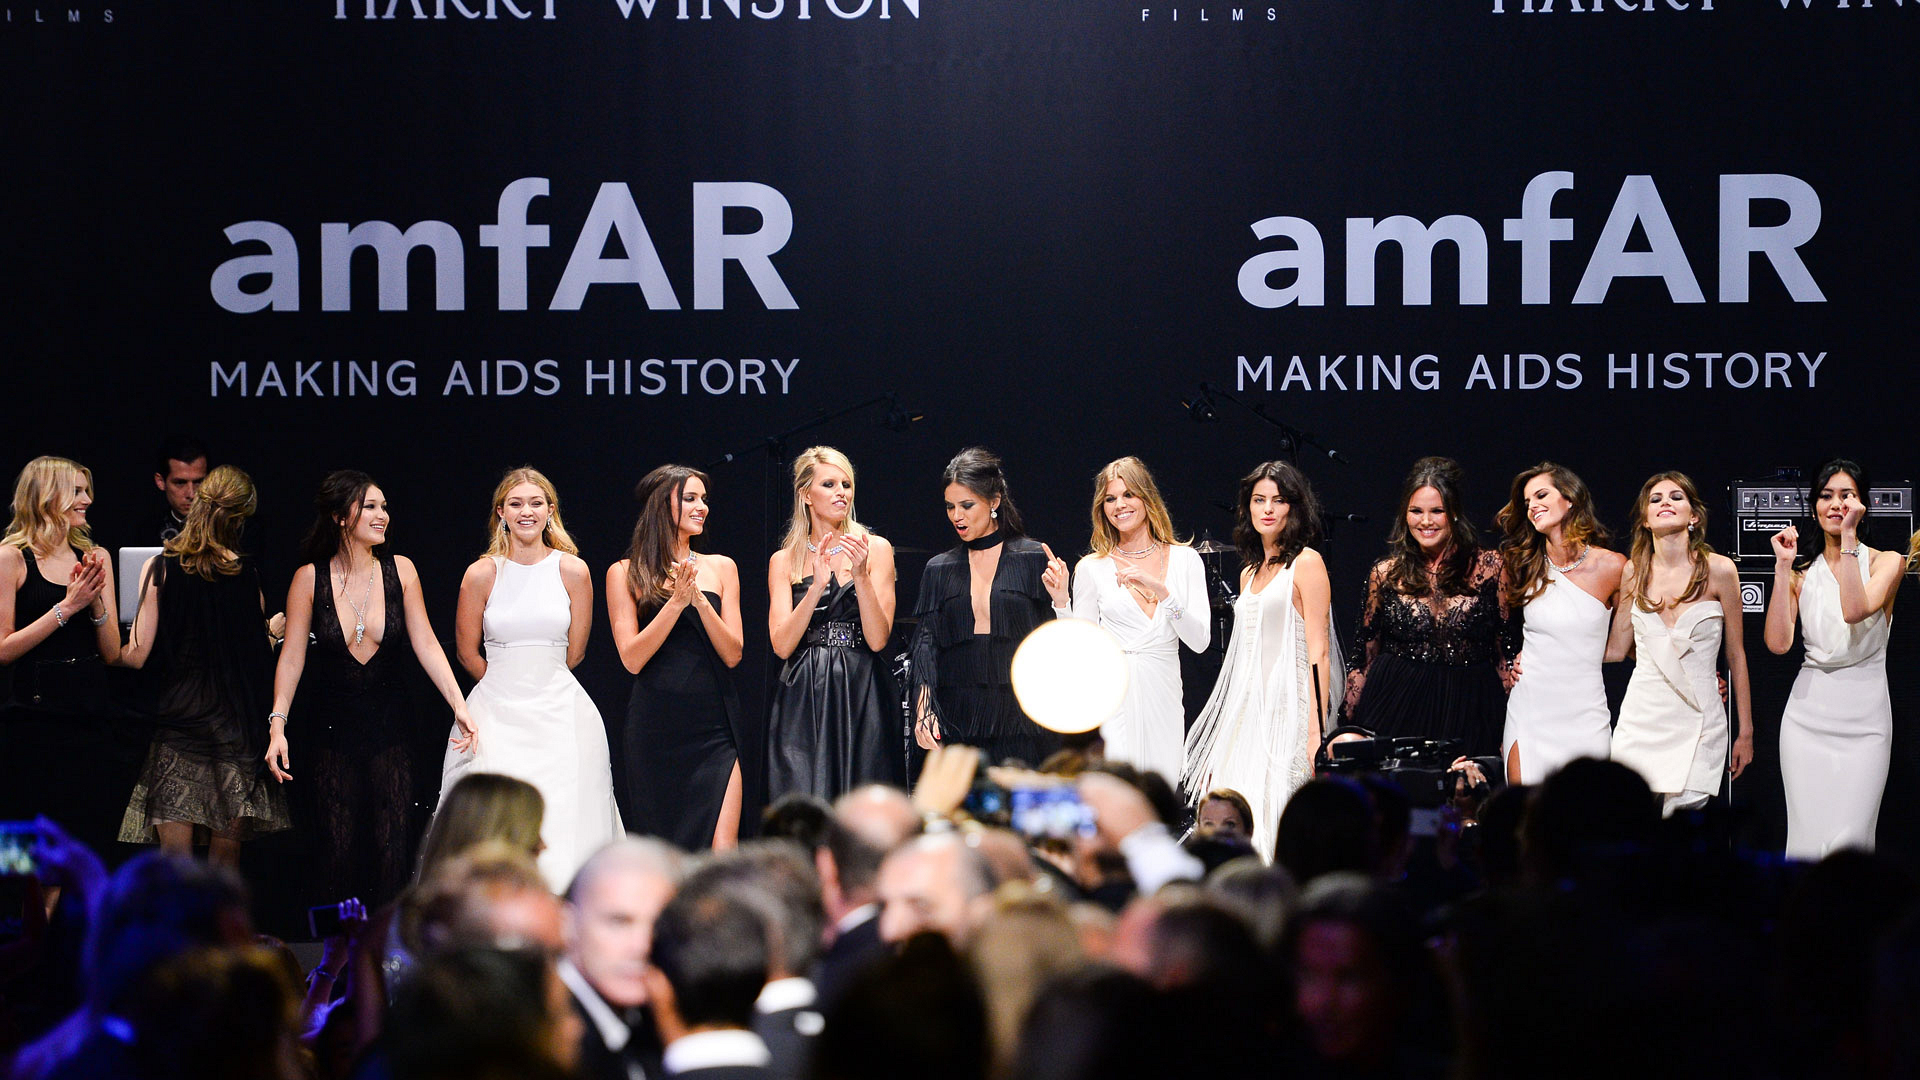 The Angels advocate for AIDS research